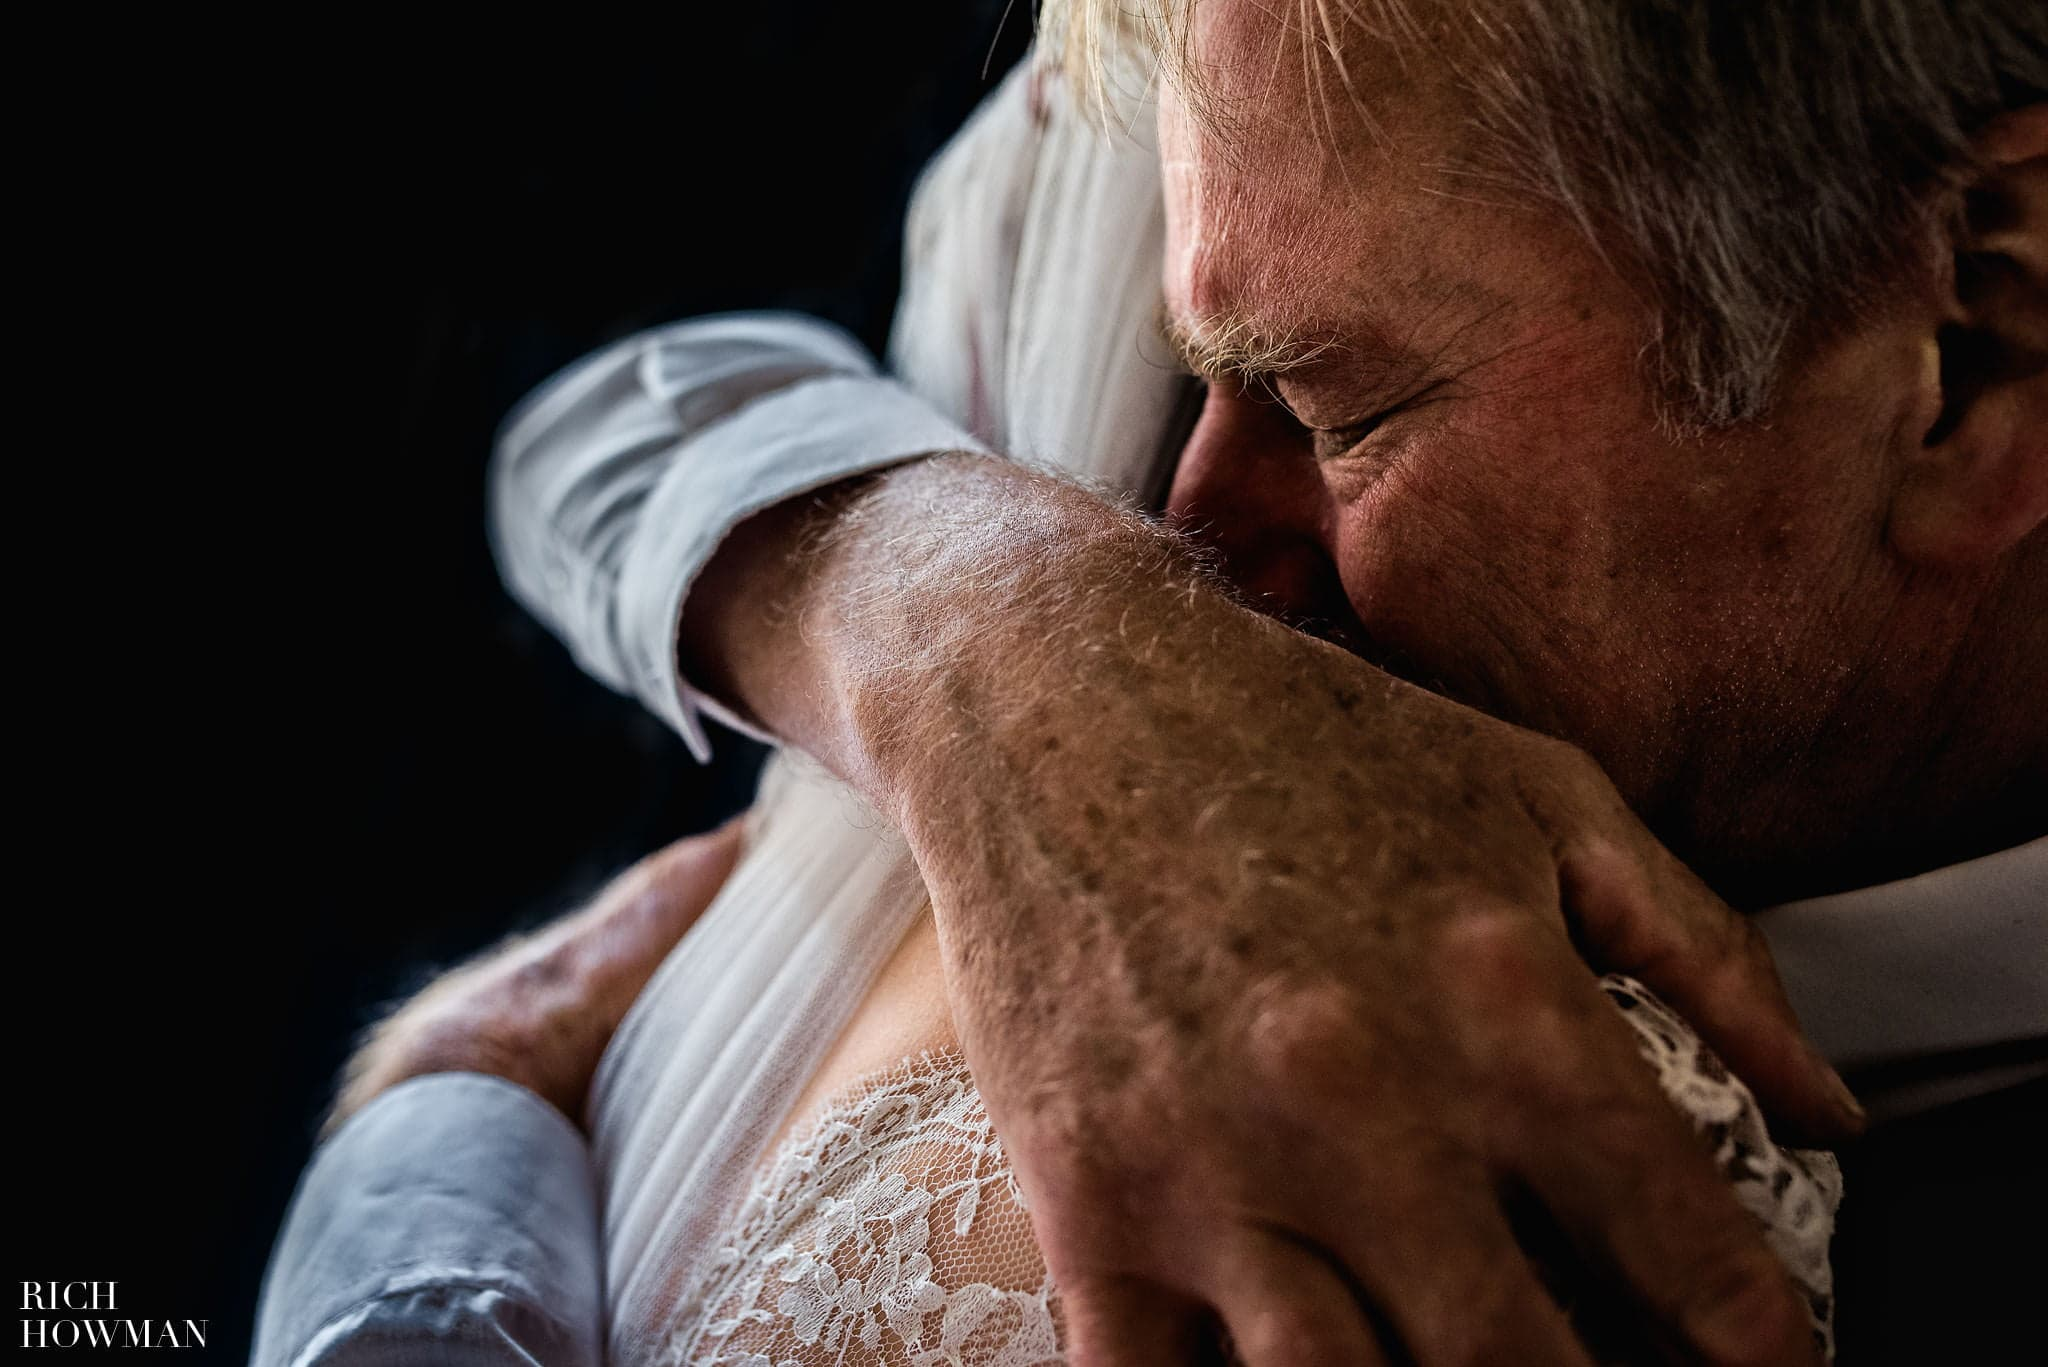 Just before getting married at the Folly Farm Centre Wedding, Pip's father embraces her